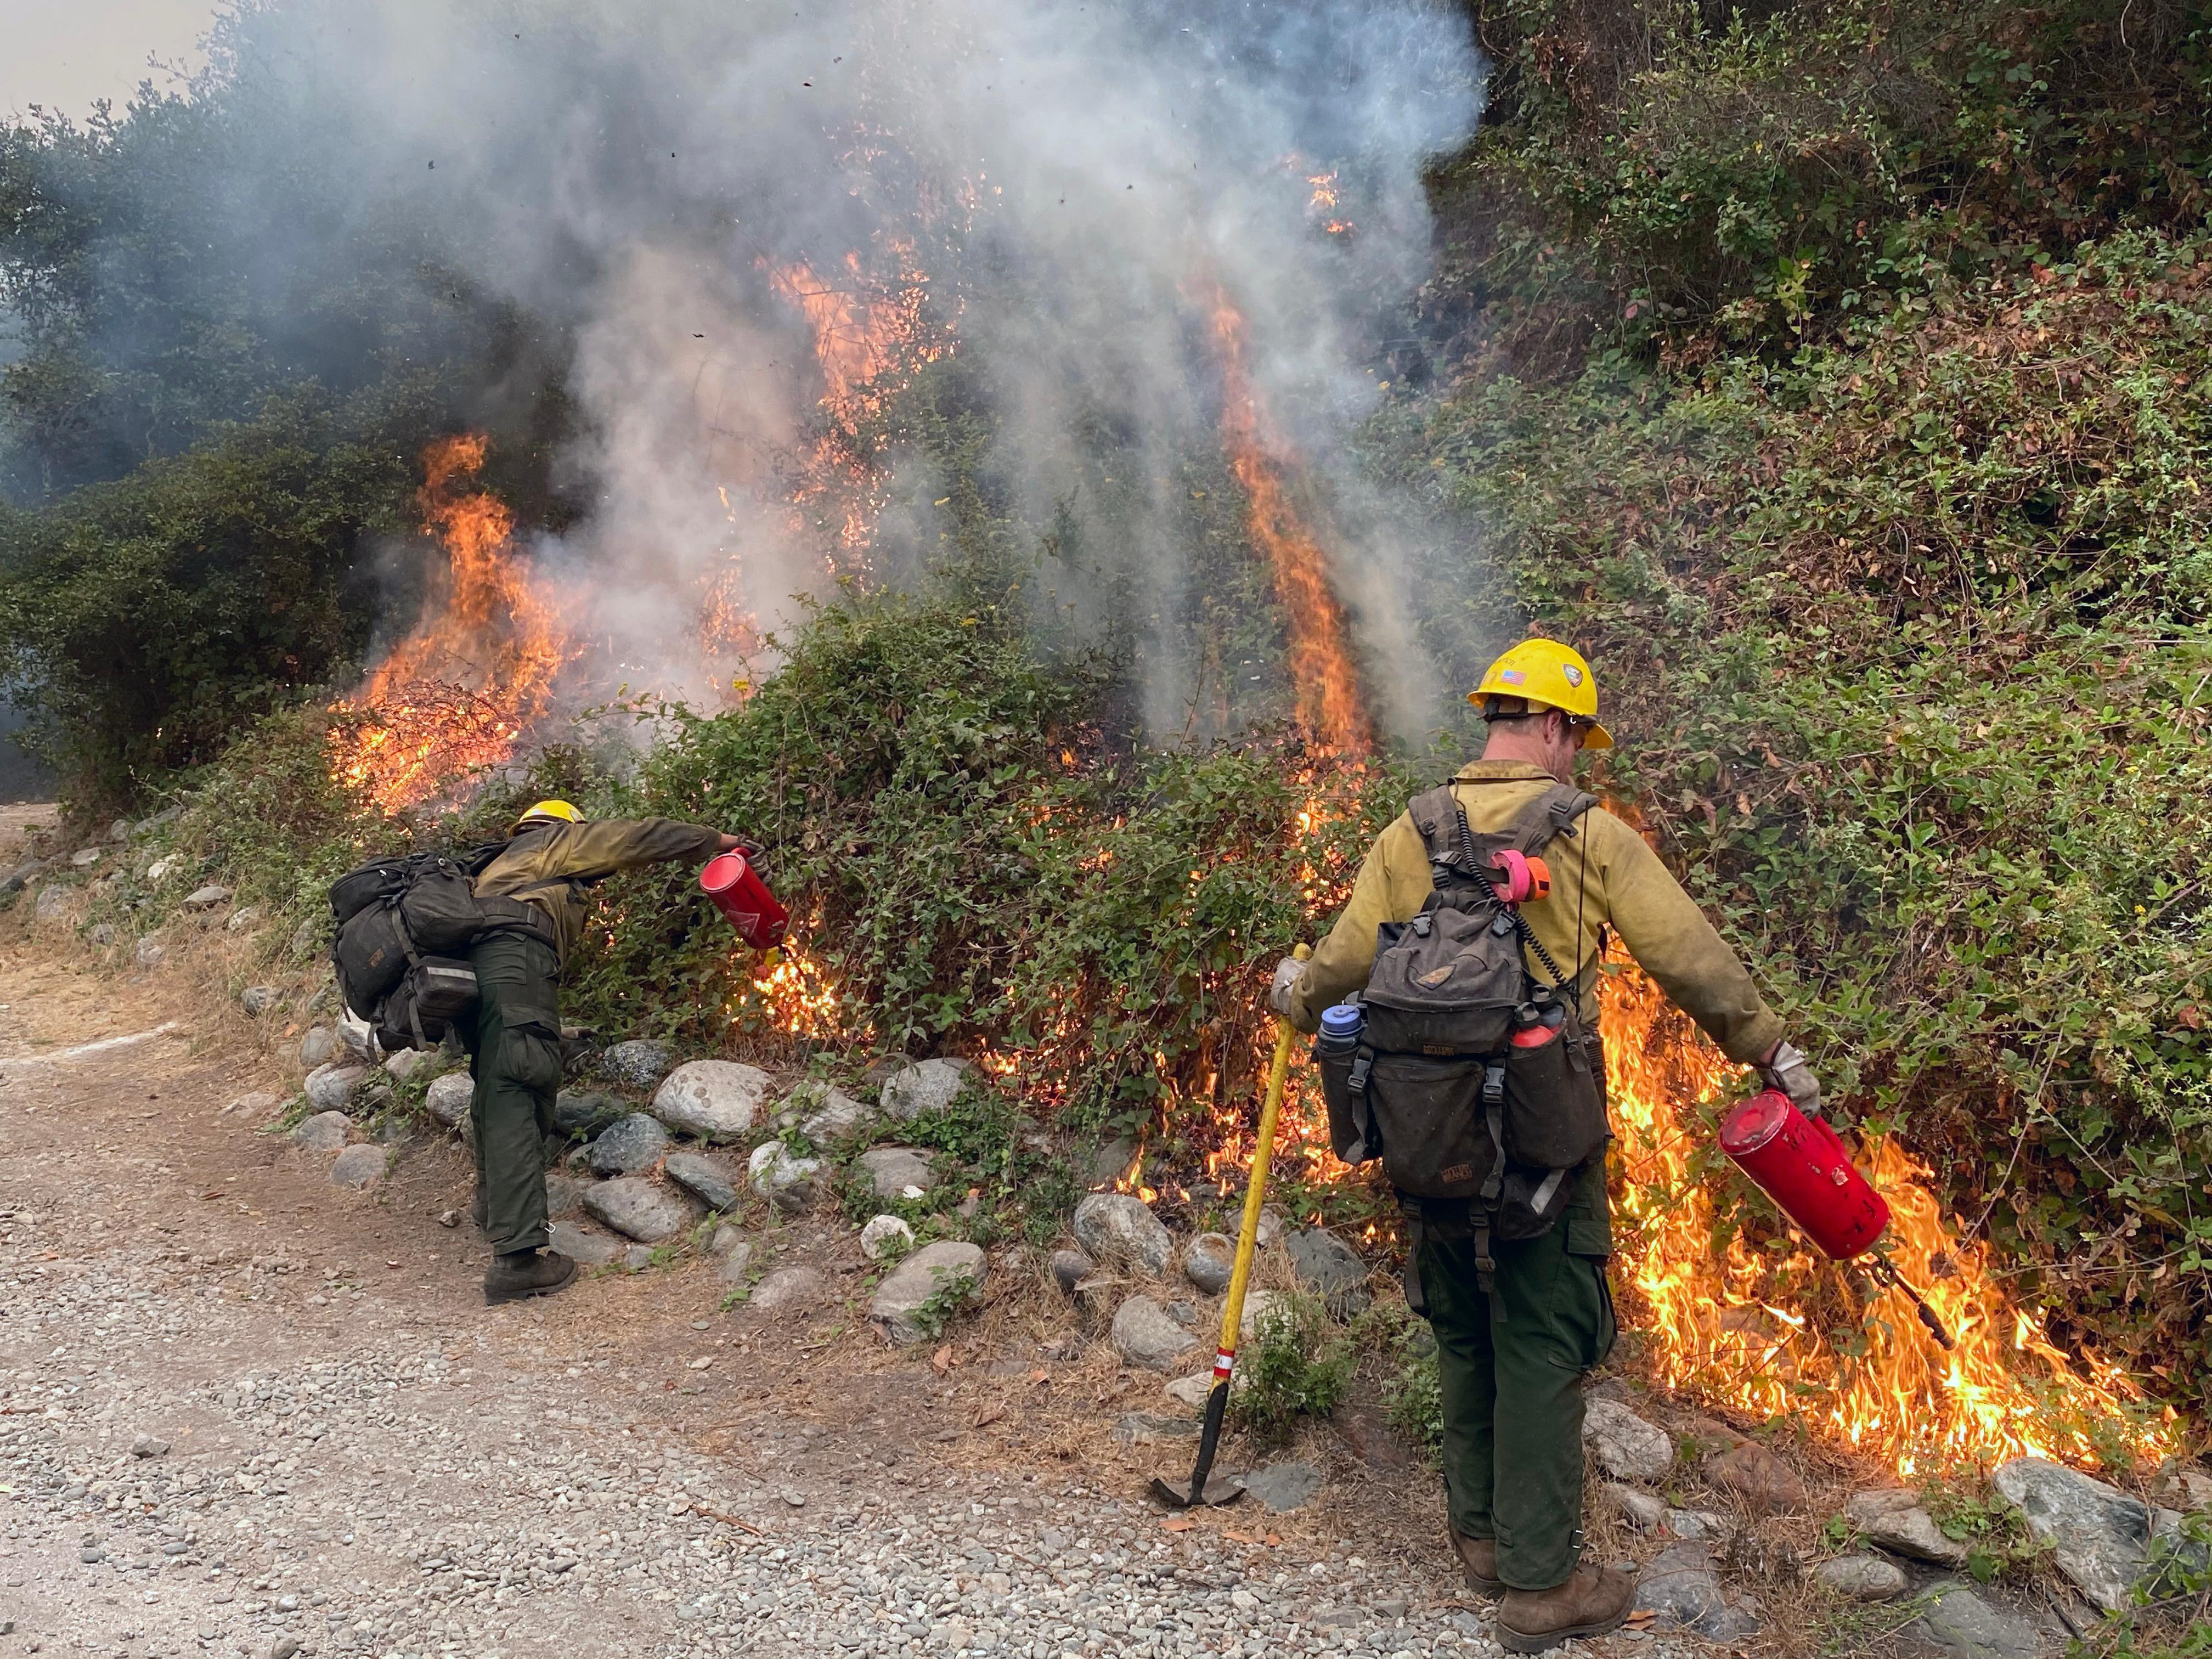 Firefighters burn vegetation along a road to create a stronger fire line at Limekiln State Park.